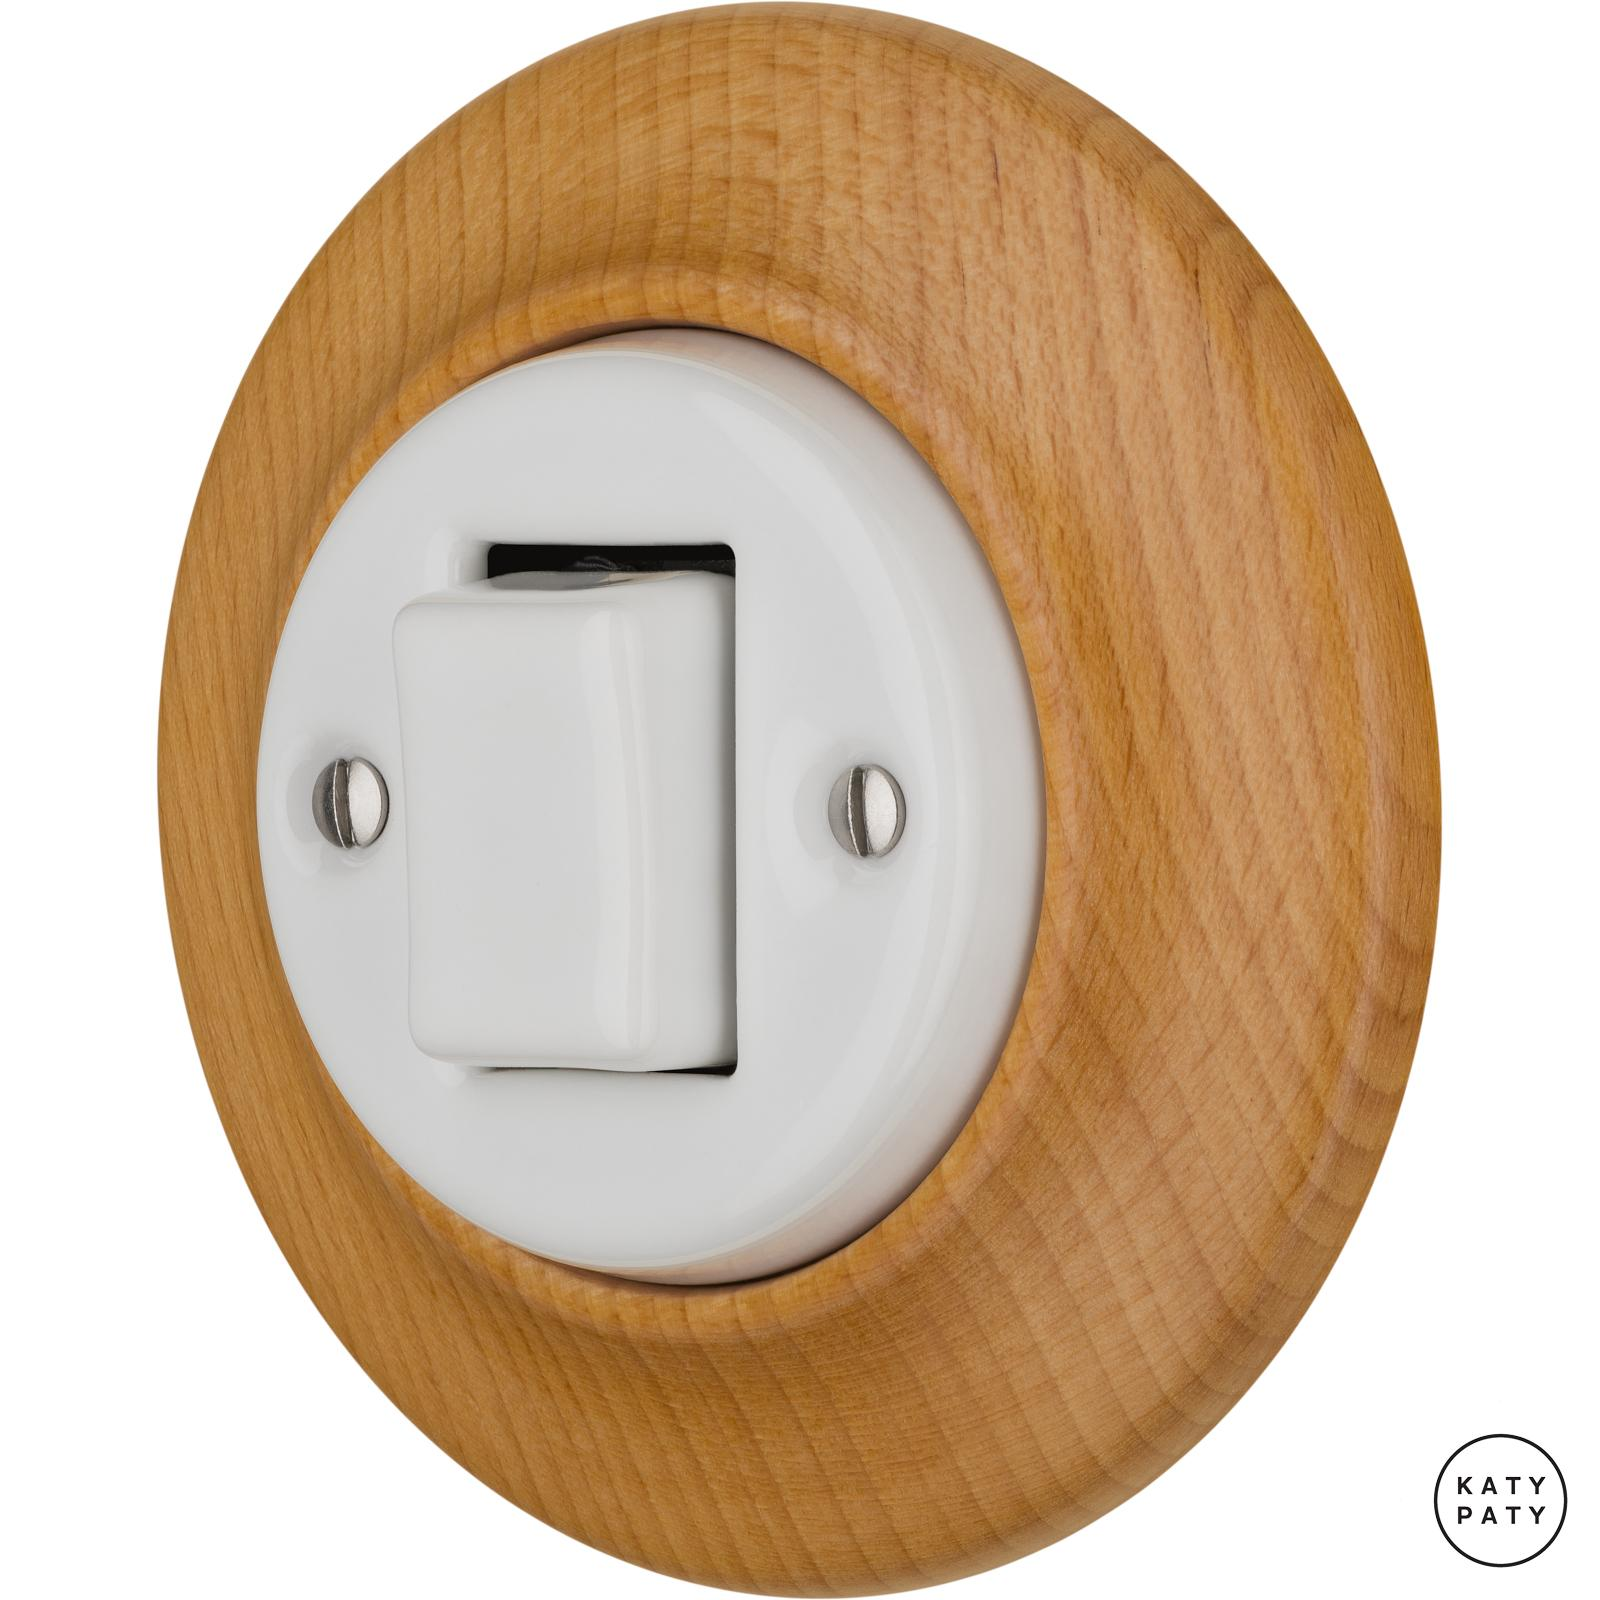 Porcelain switches - 1 gang - FAT ()  - FAGUS | Katy Paty